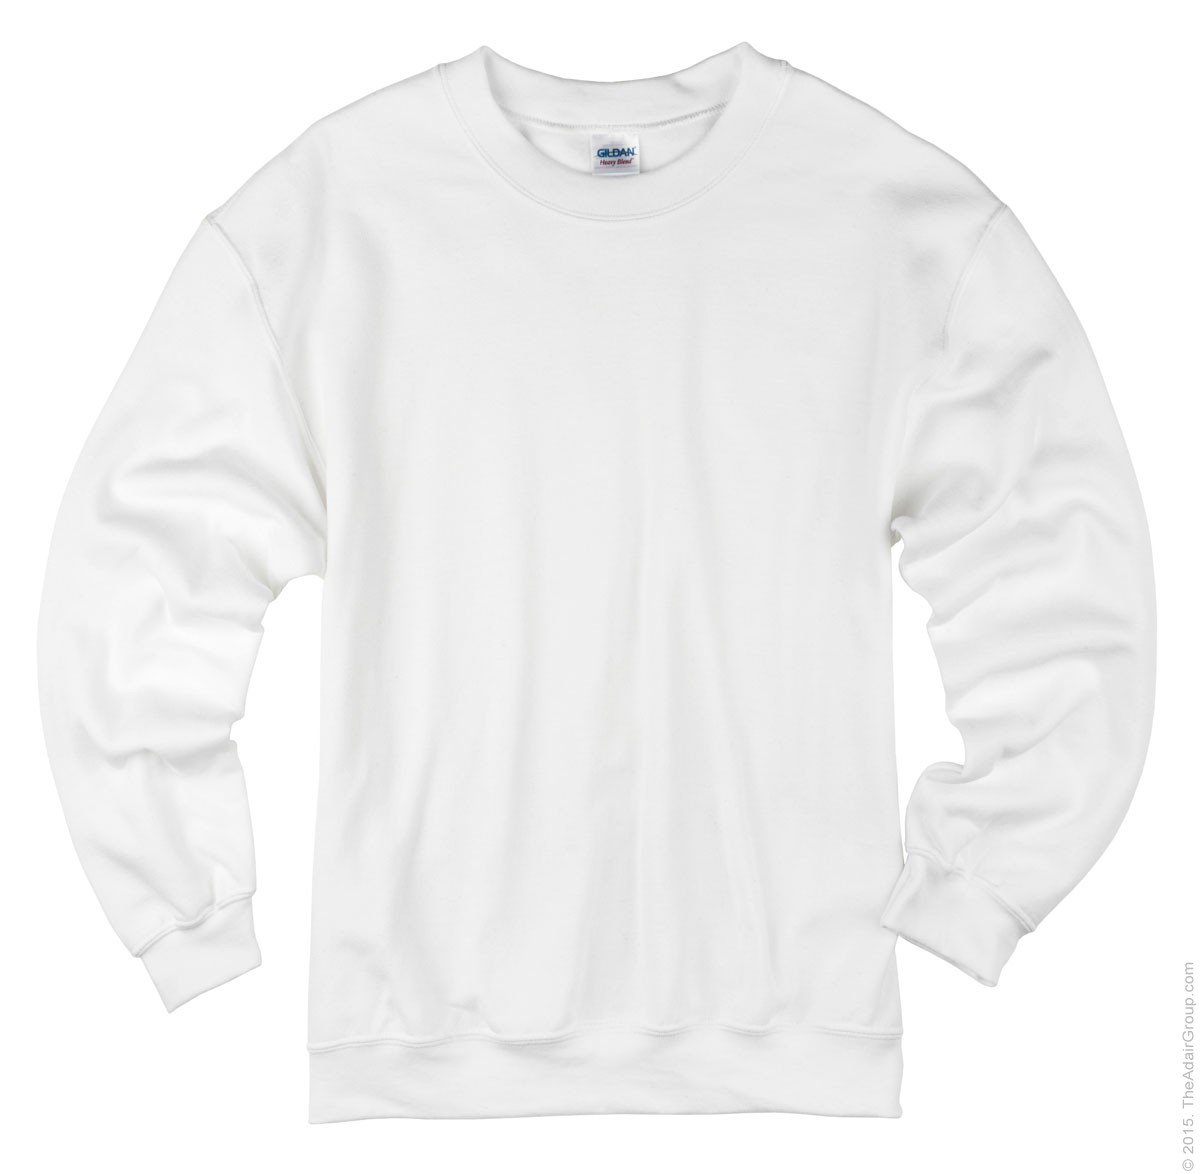 adults buttons sweatshirt for white with